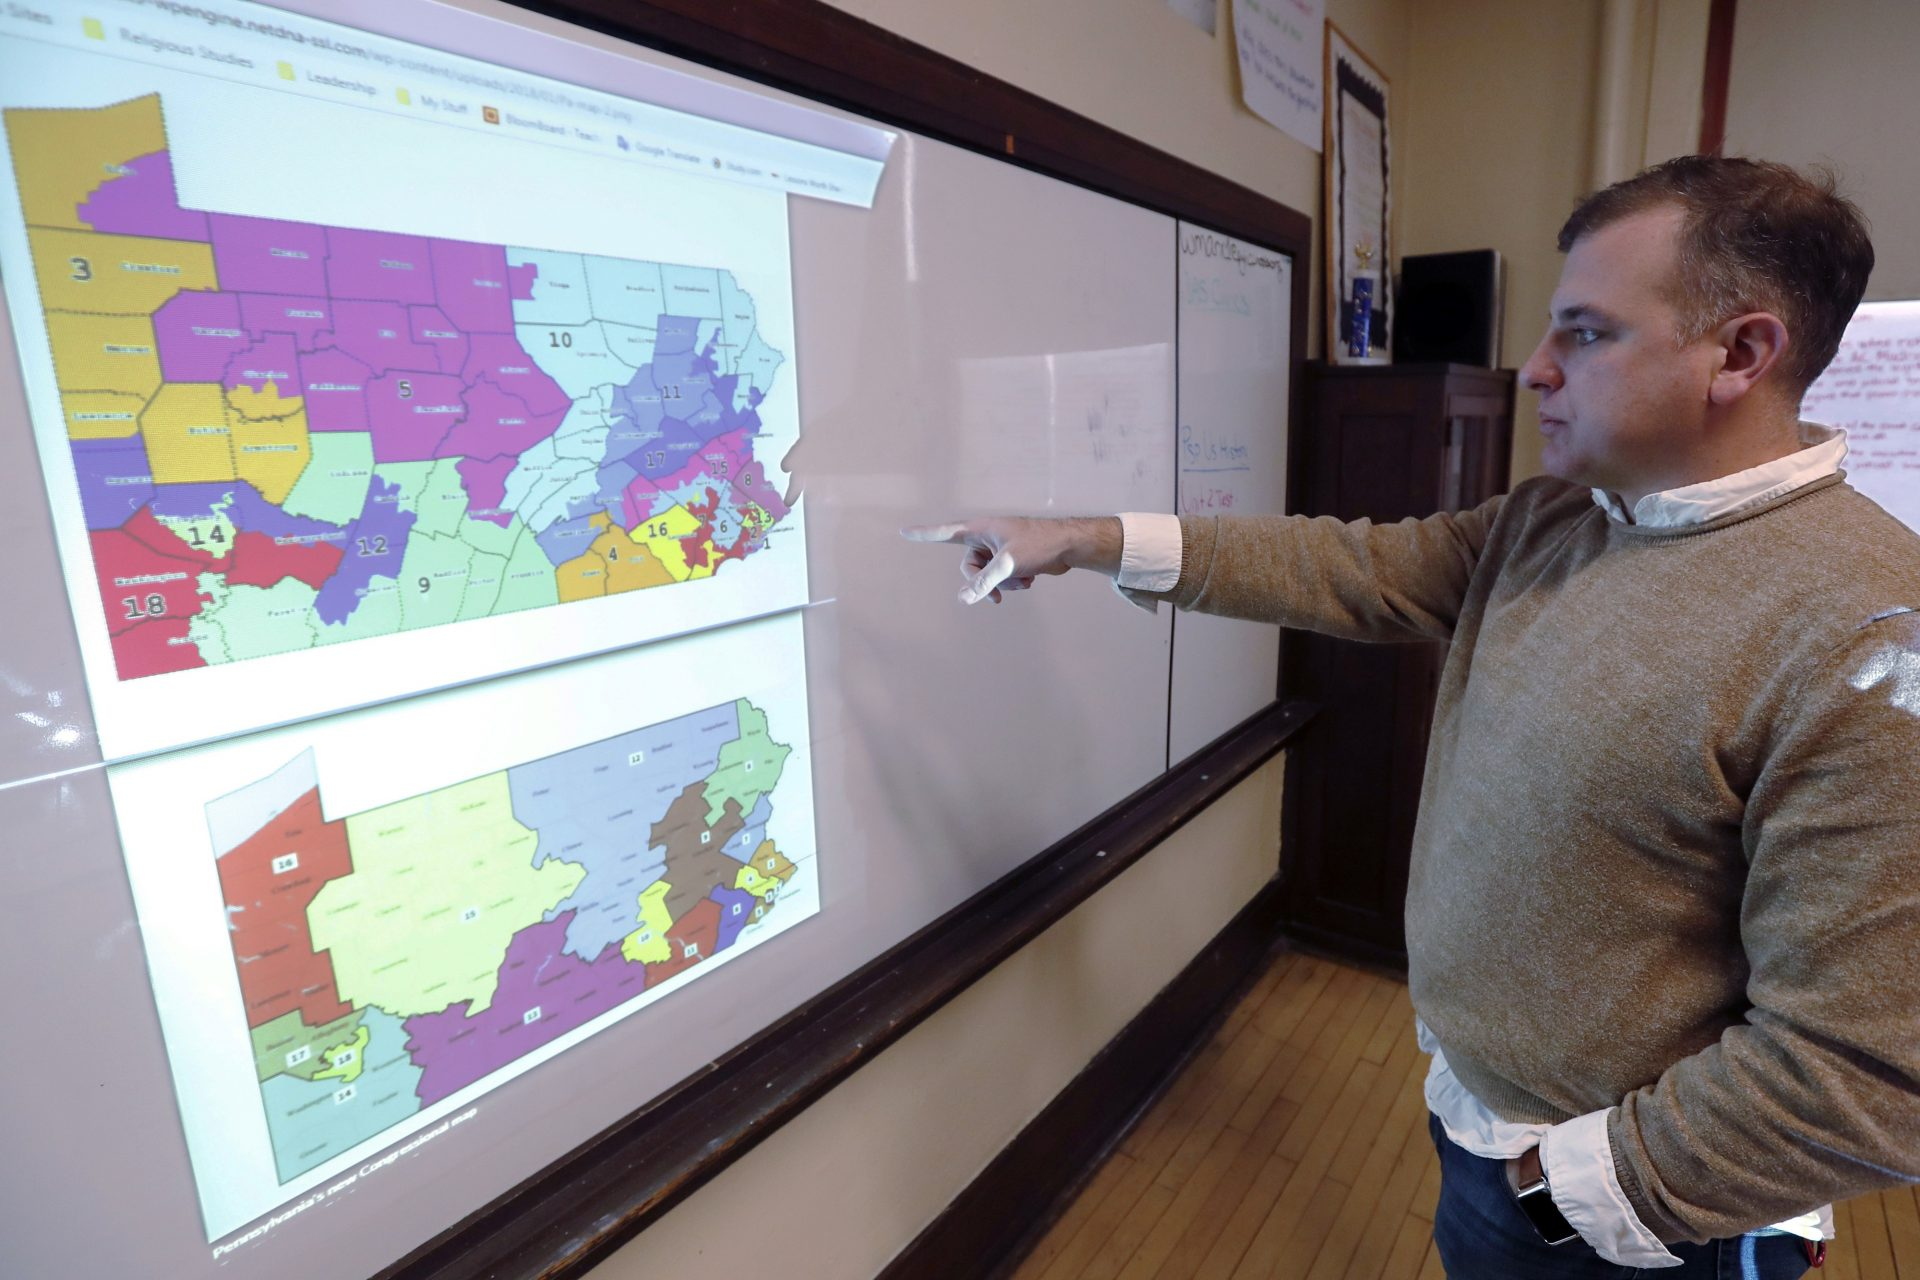 FILE PHOTO: William Marx, points to projected images of the old congressional districts of Pennsylvania on top, and the new re-drawn districts on the bottom, while standing in the classroom where he teaches civics in Pittsburgh on Friday, Nov. 16, 2018.